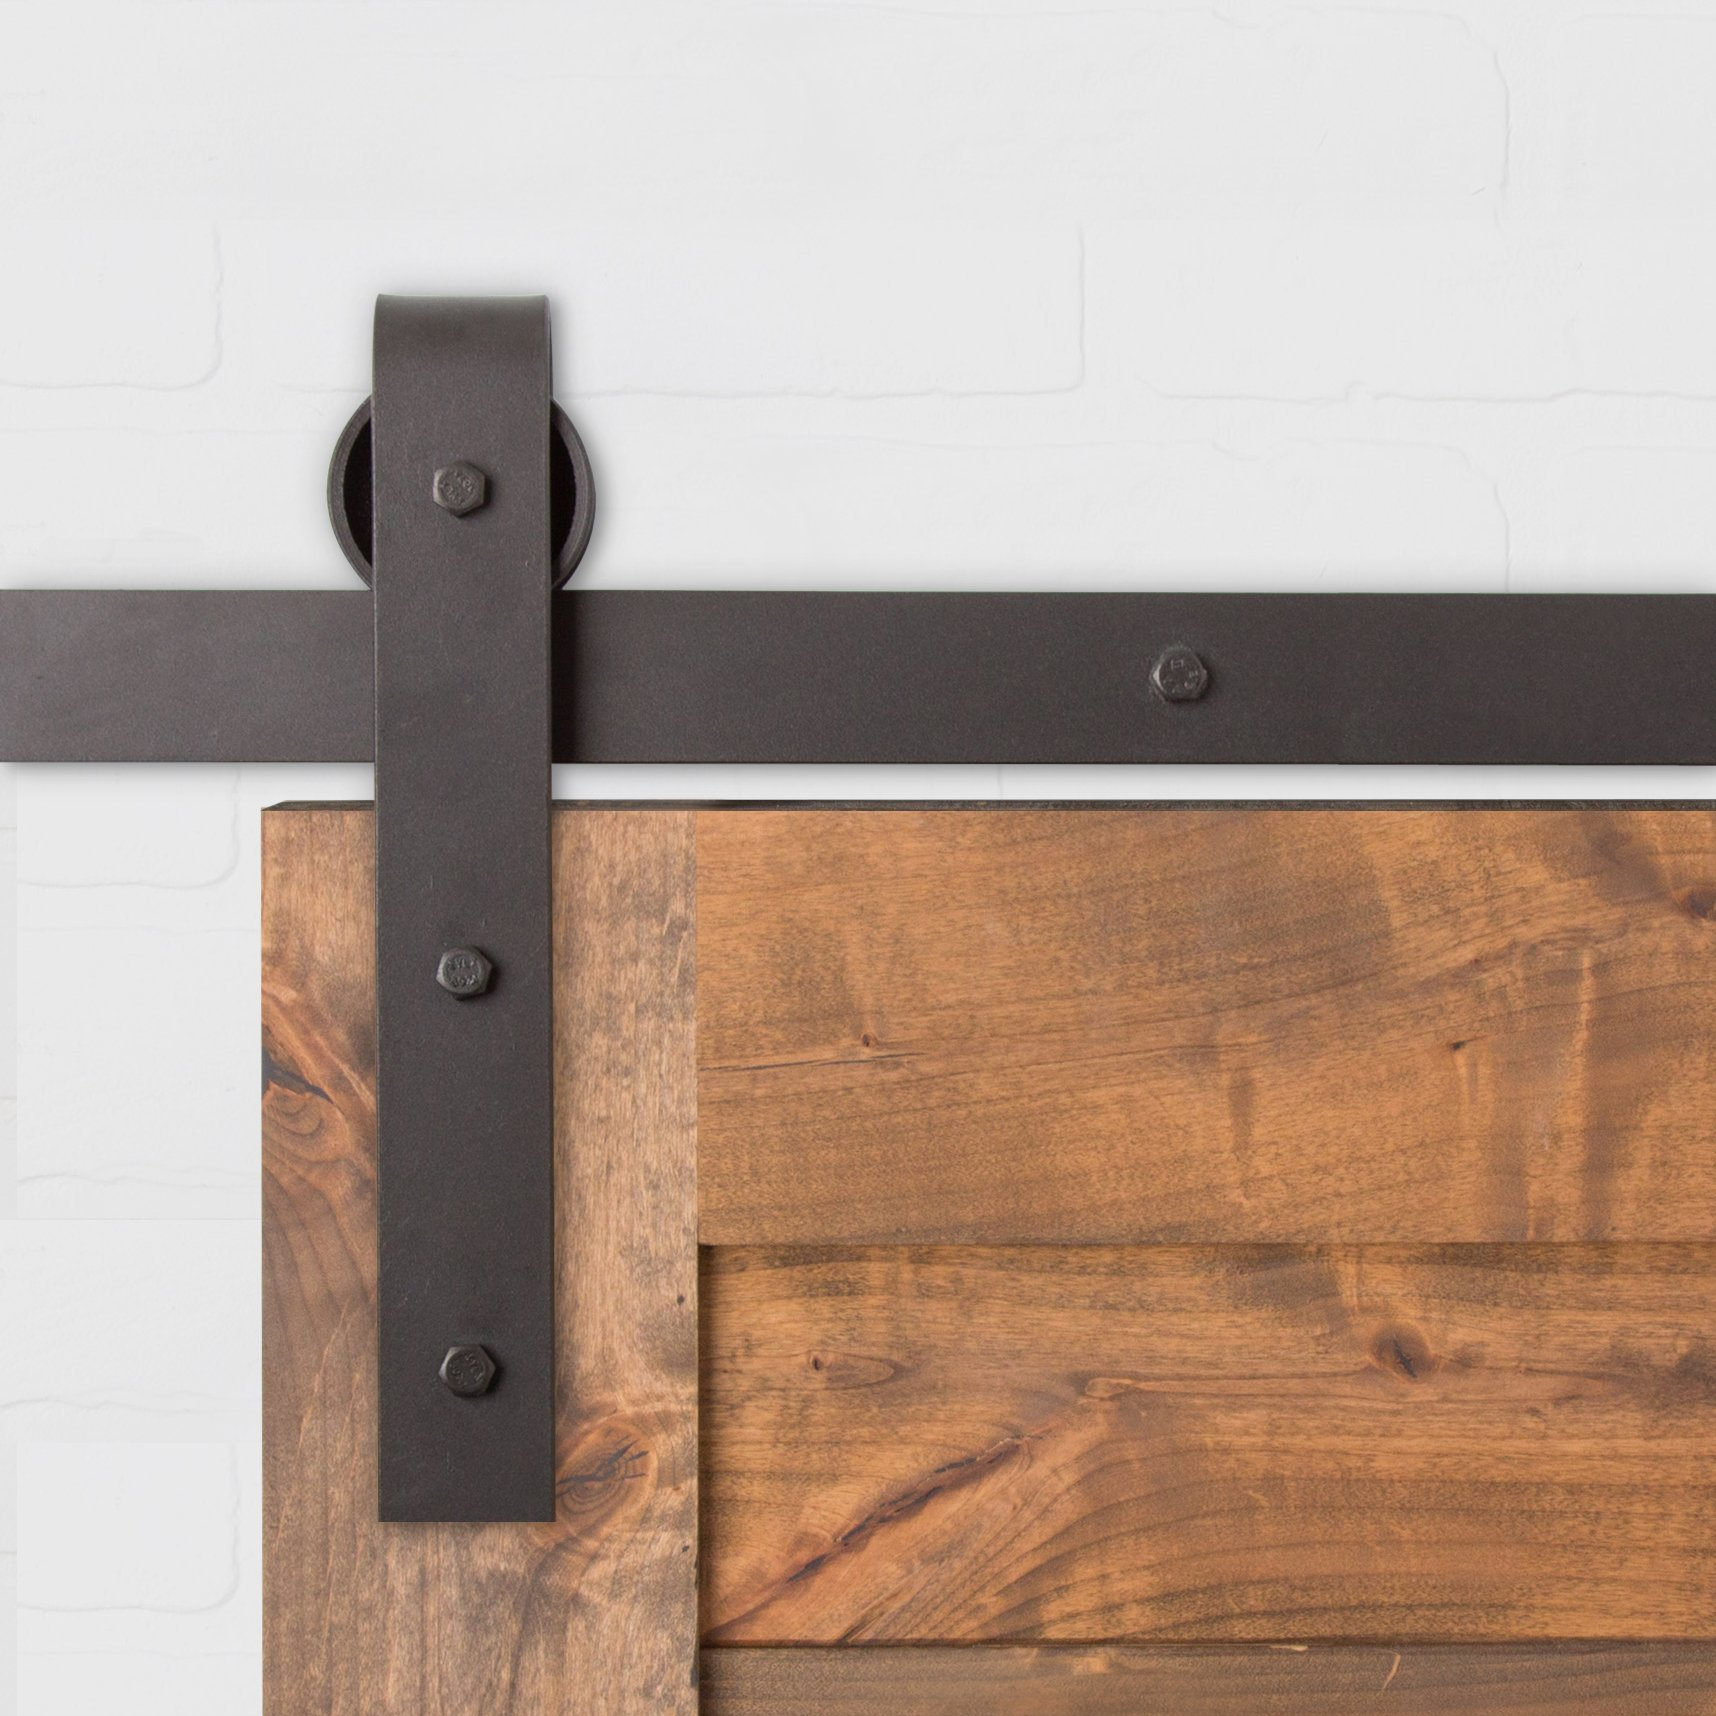 Artisan Hardware 11 FT Sliding Barn Door Hardware Kit | USA MADE System | Oil Rubbed Bronze by Artisan Hardware